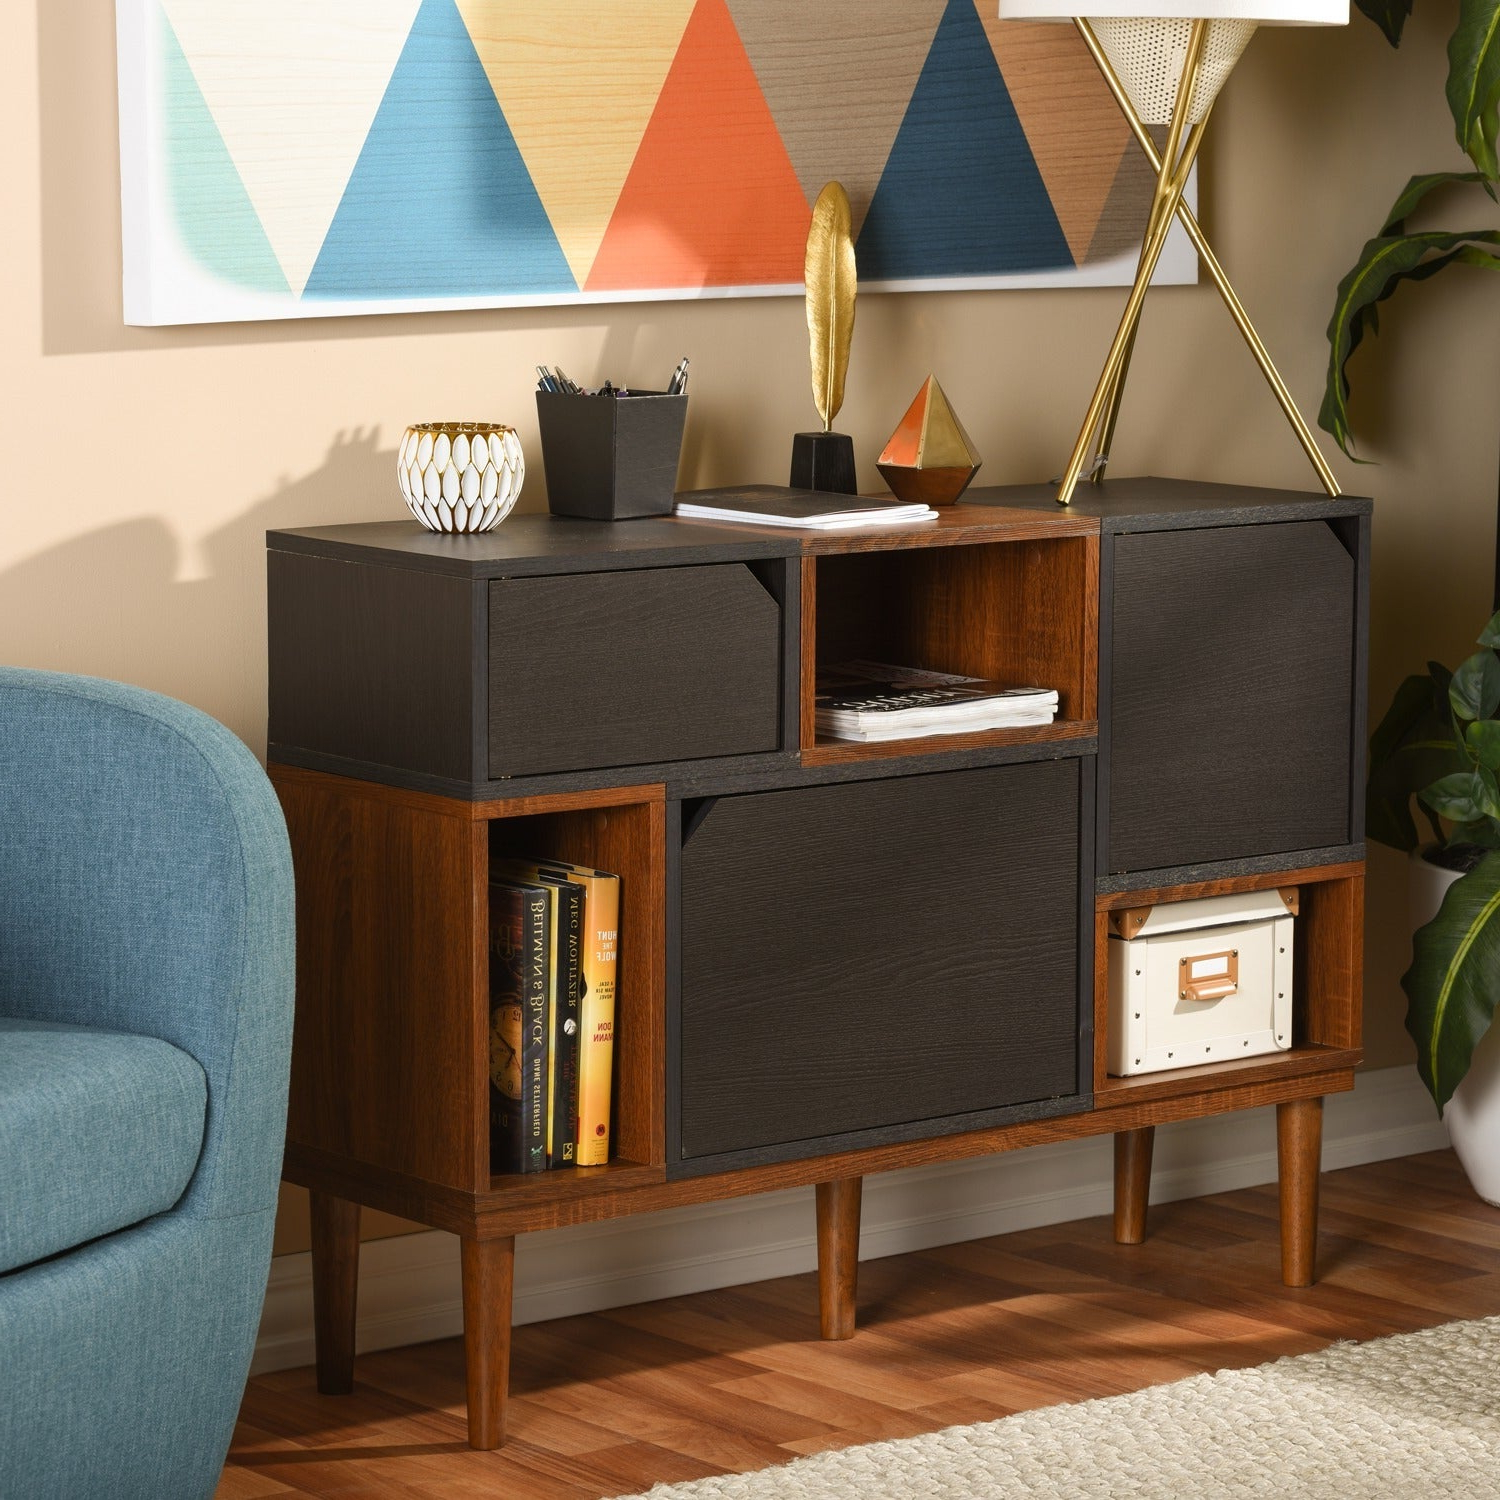 Baxton Studio Anderson Mid Century Retro Modern Oak And Espresso Wood  Sideboard Storage Cabinet With Regard To Mid Century Retro Modern Oak And Espresso Wood Buffets (View 4 of 20)